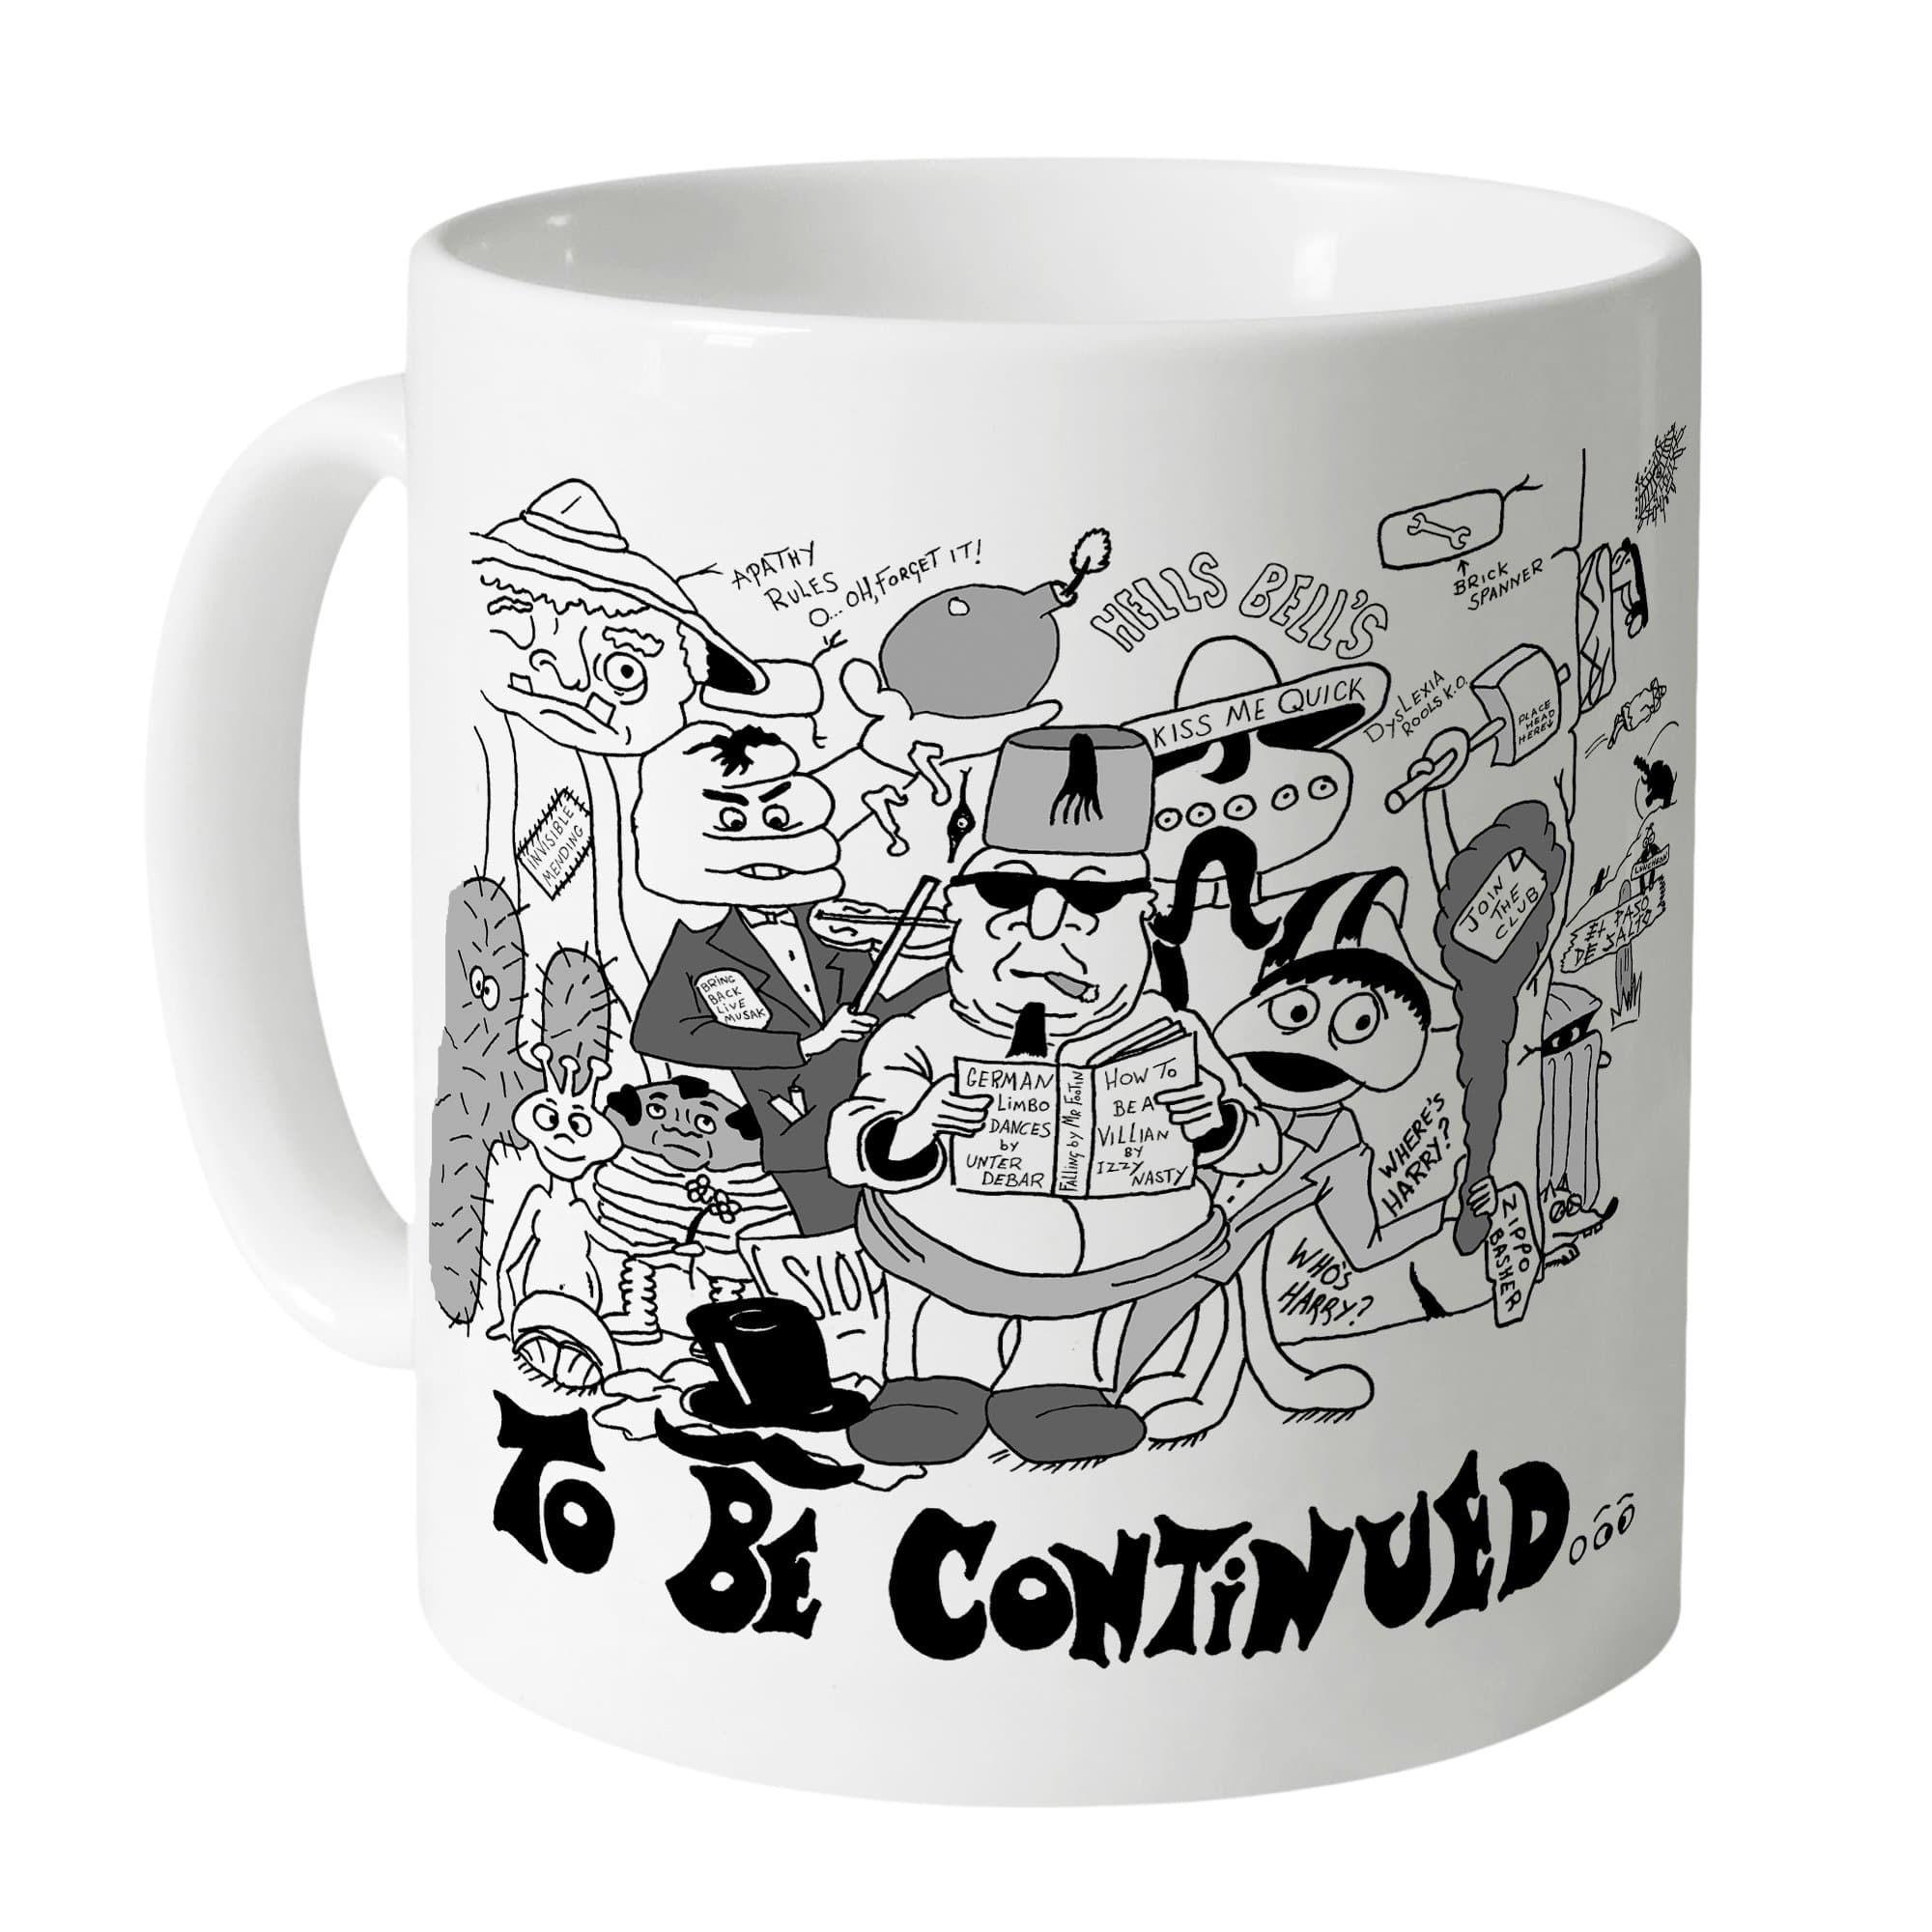 Dick Spanner Comic Strip Mug [Official & Exclusive] - The Gerry Anderson Store